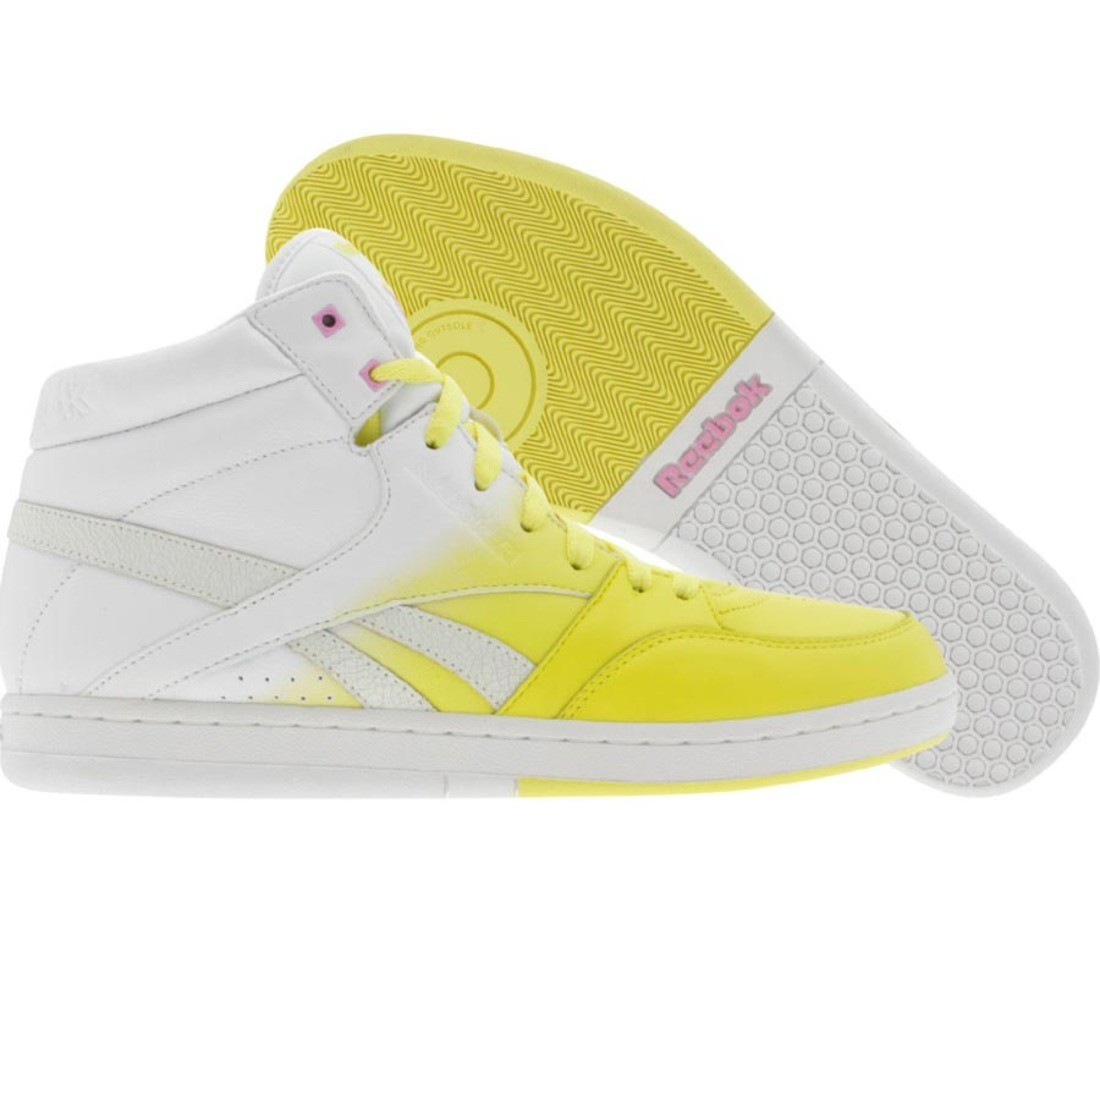 Reebok Womens Courtee Mid (yellow / white / neon blue / pink)